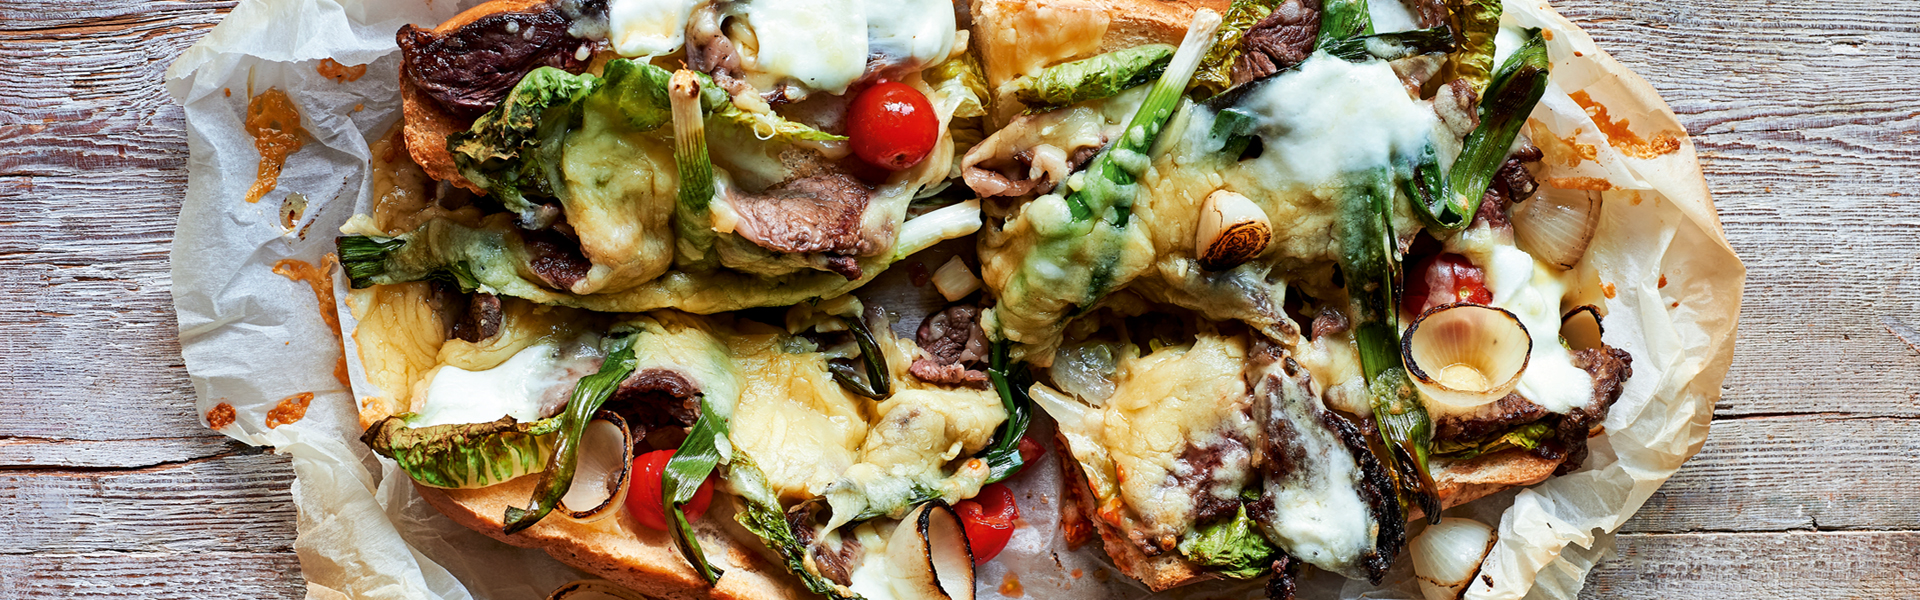 James Martin: Philly Cheesesteak Recipe